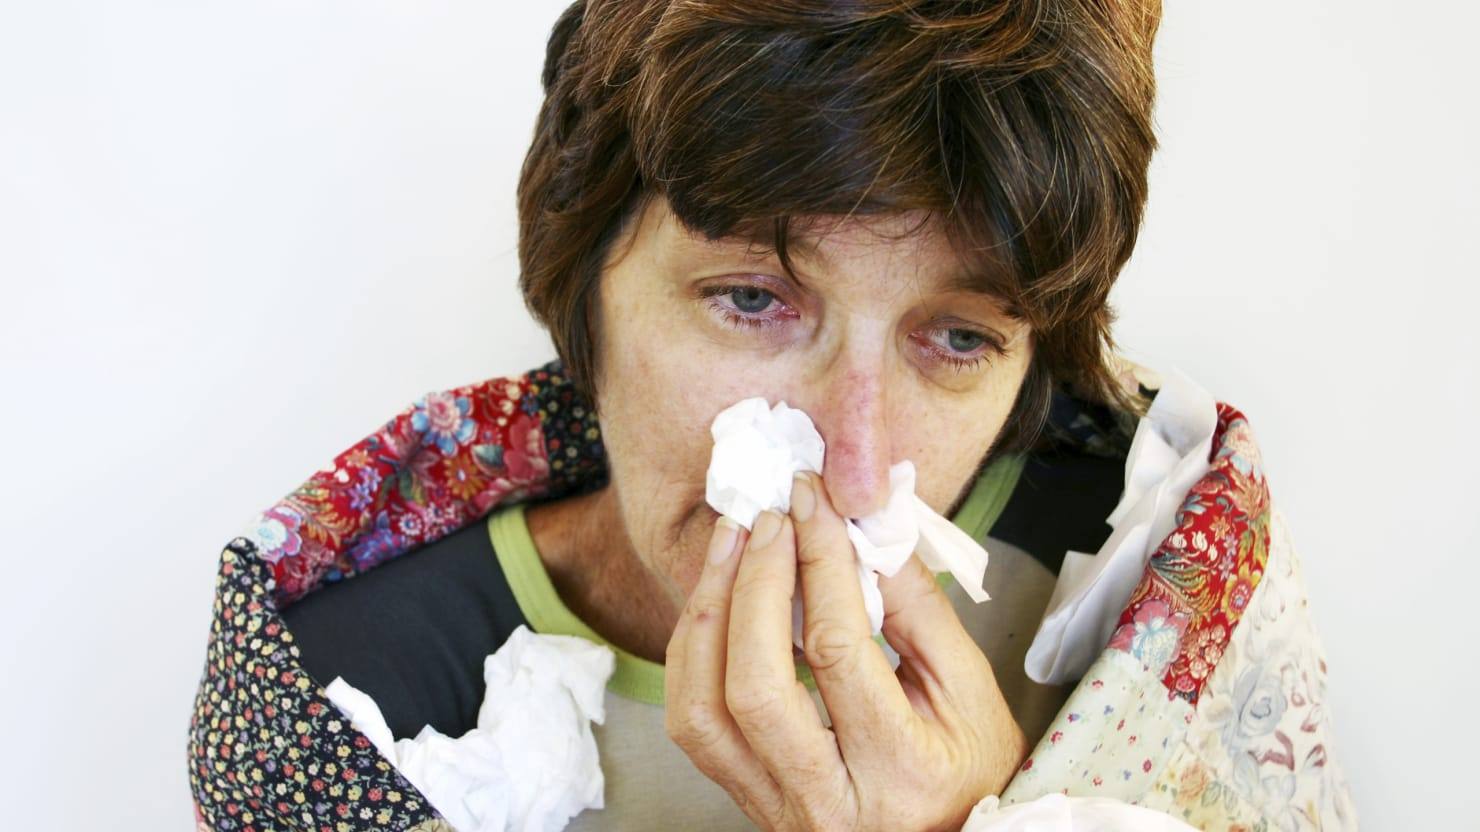 influenza articles or blog posts 2011